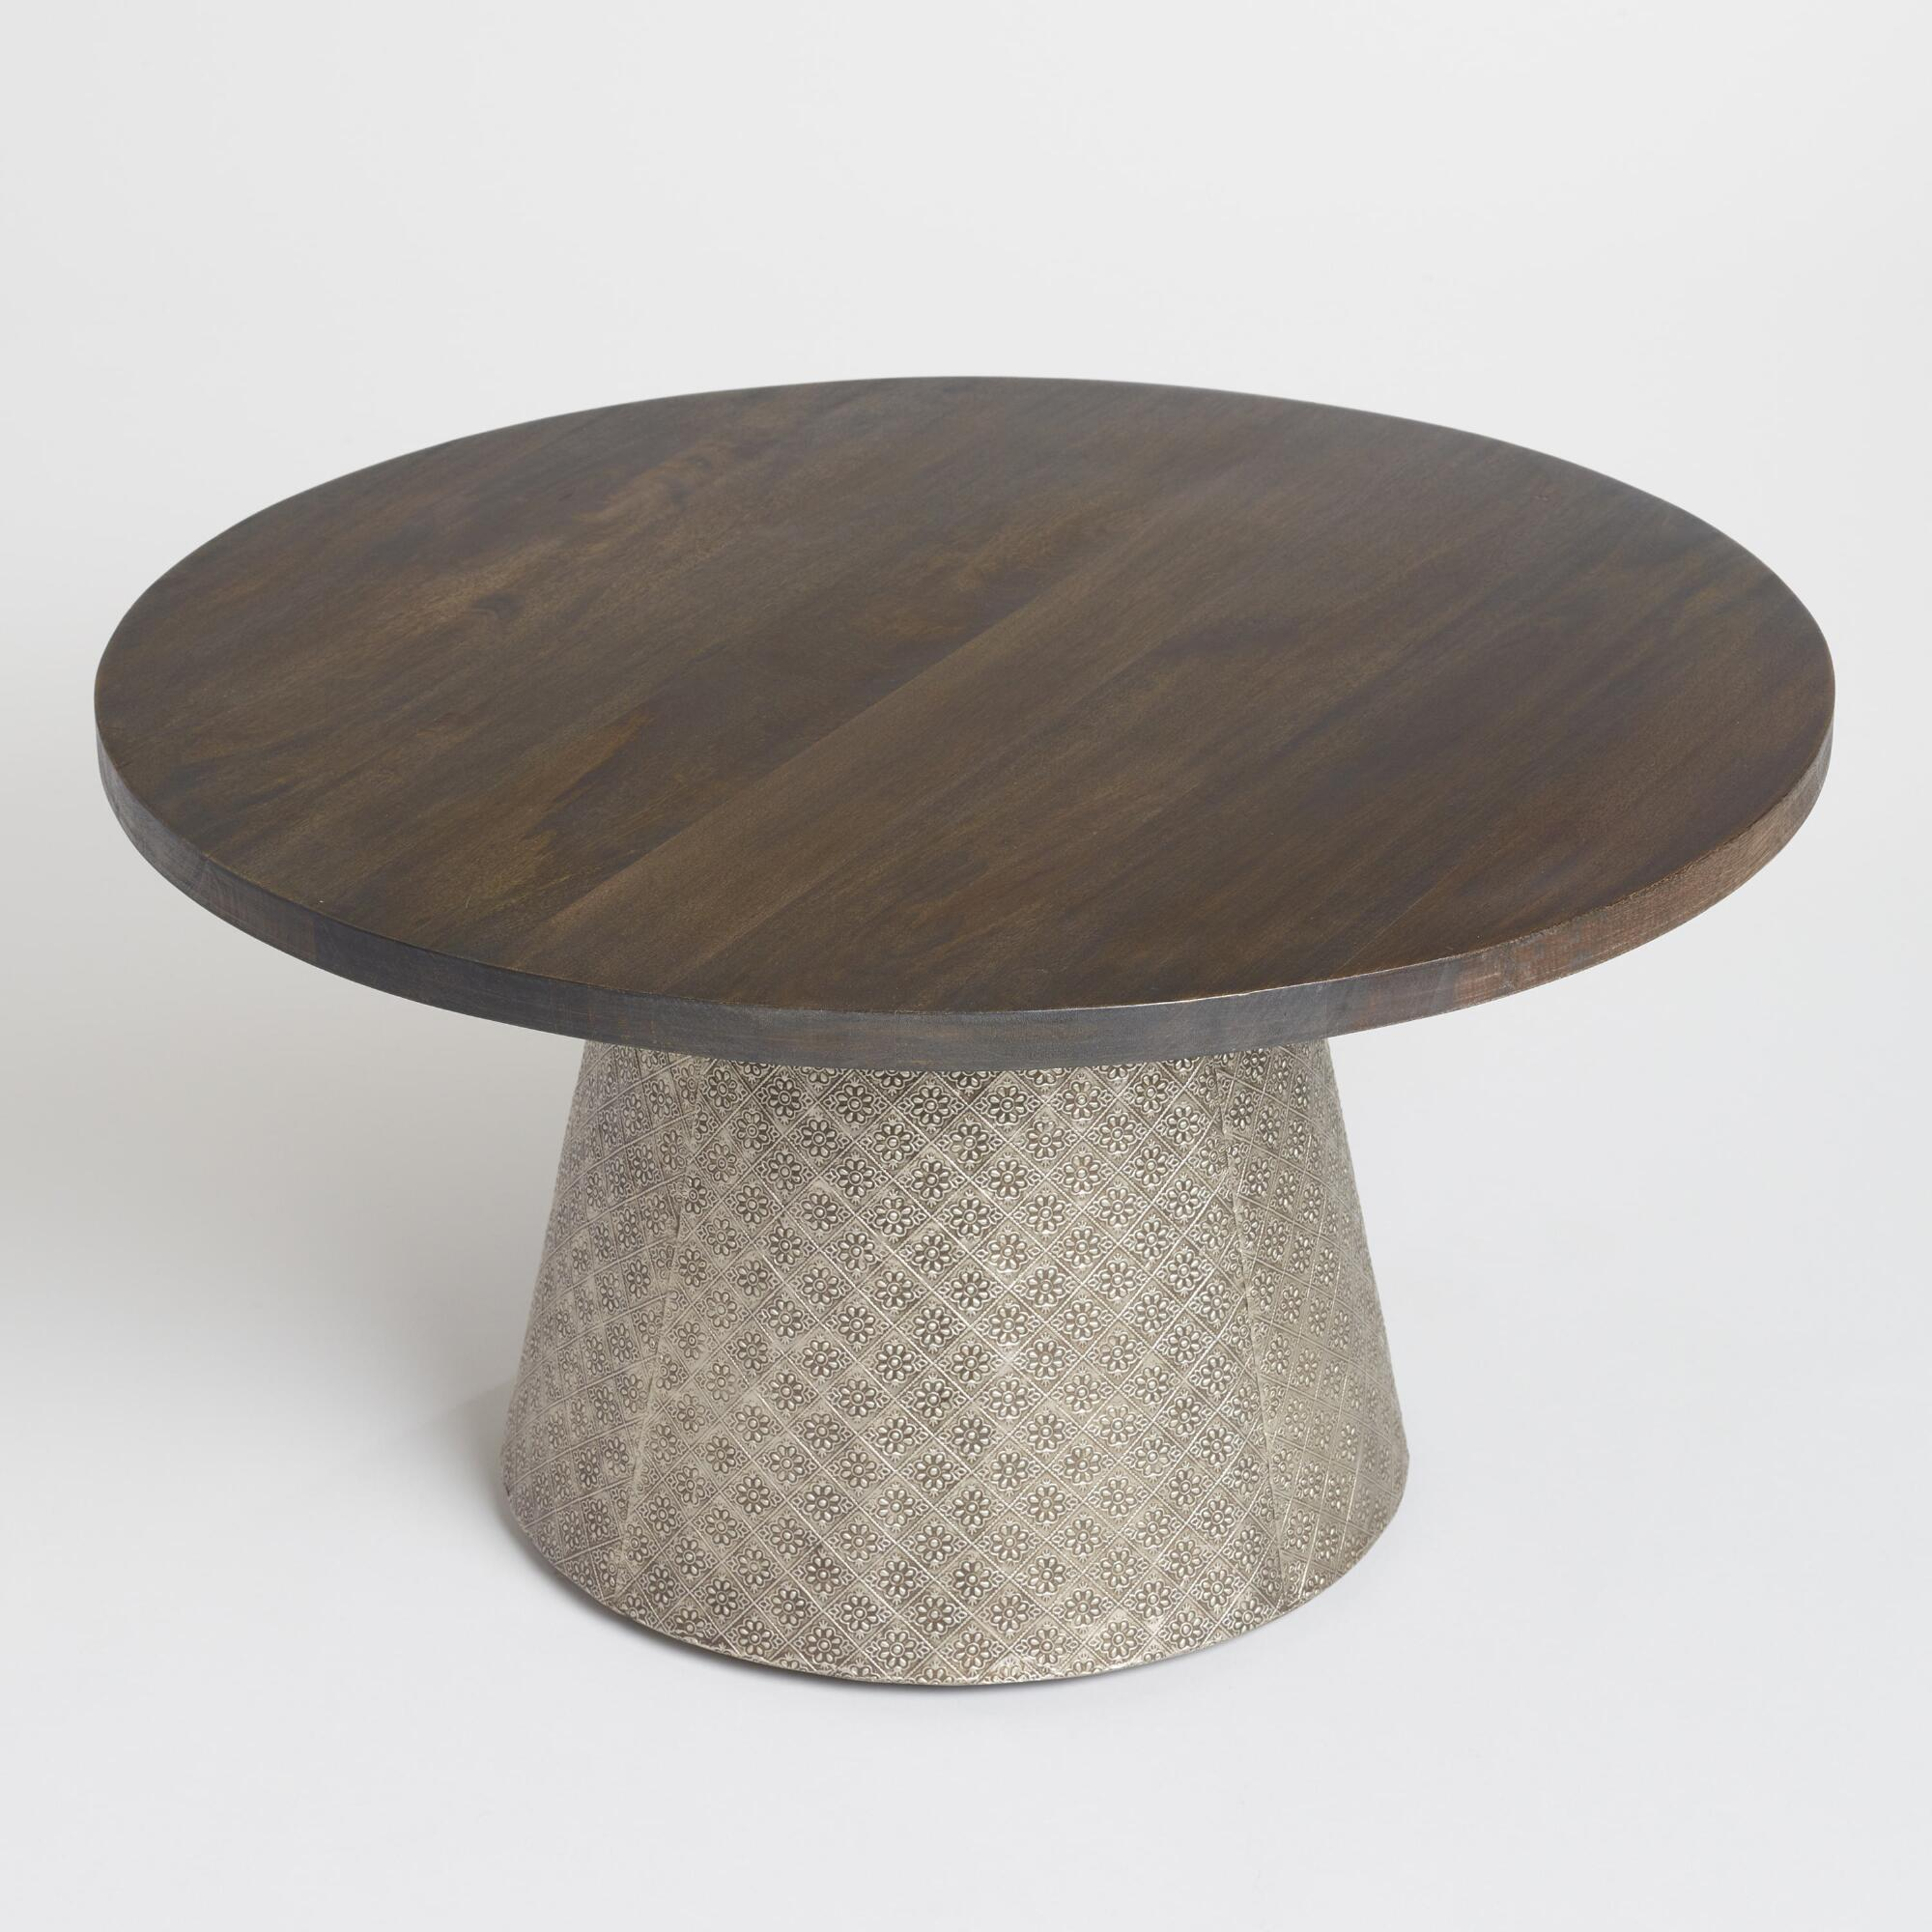 coffee tables end accent world market iipsrv fcgi marble top table target round wood and embossed metal kiran teak outdoor knurl nesting white yellow area rug chrome glass home